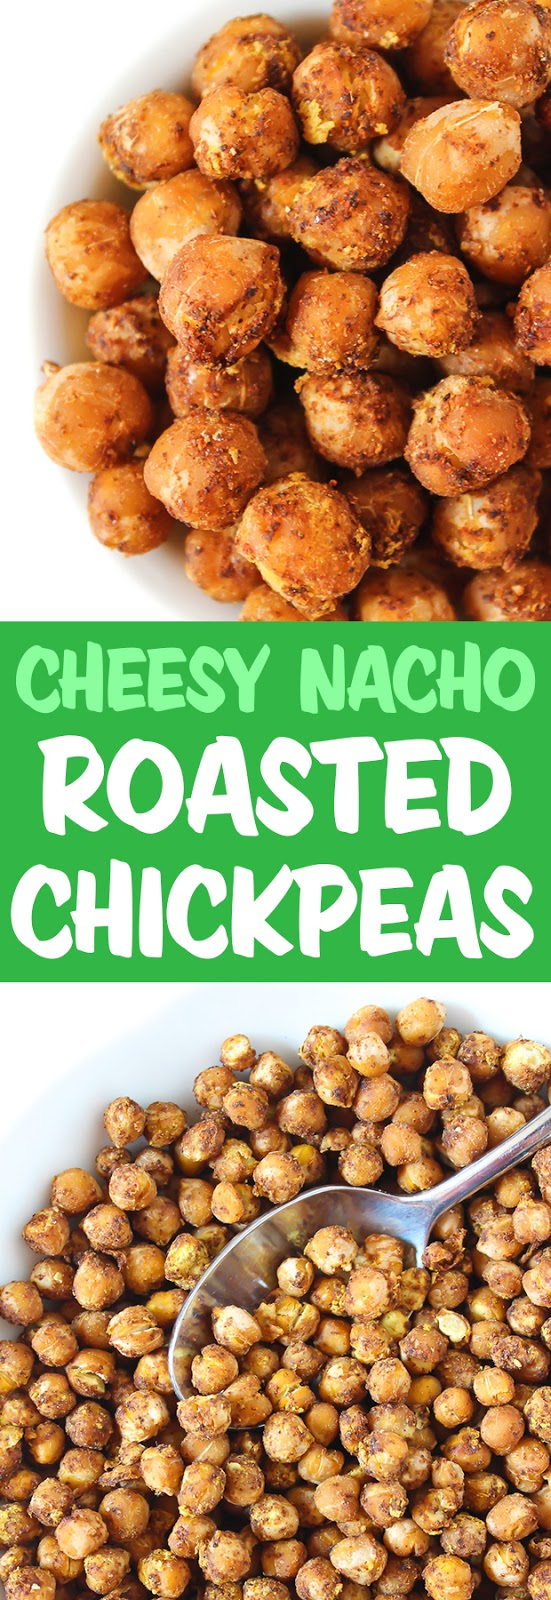 Photo collage of cheesy nacho chickpeas